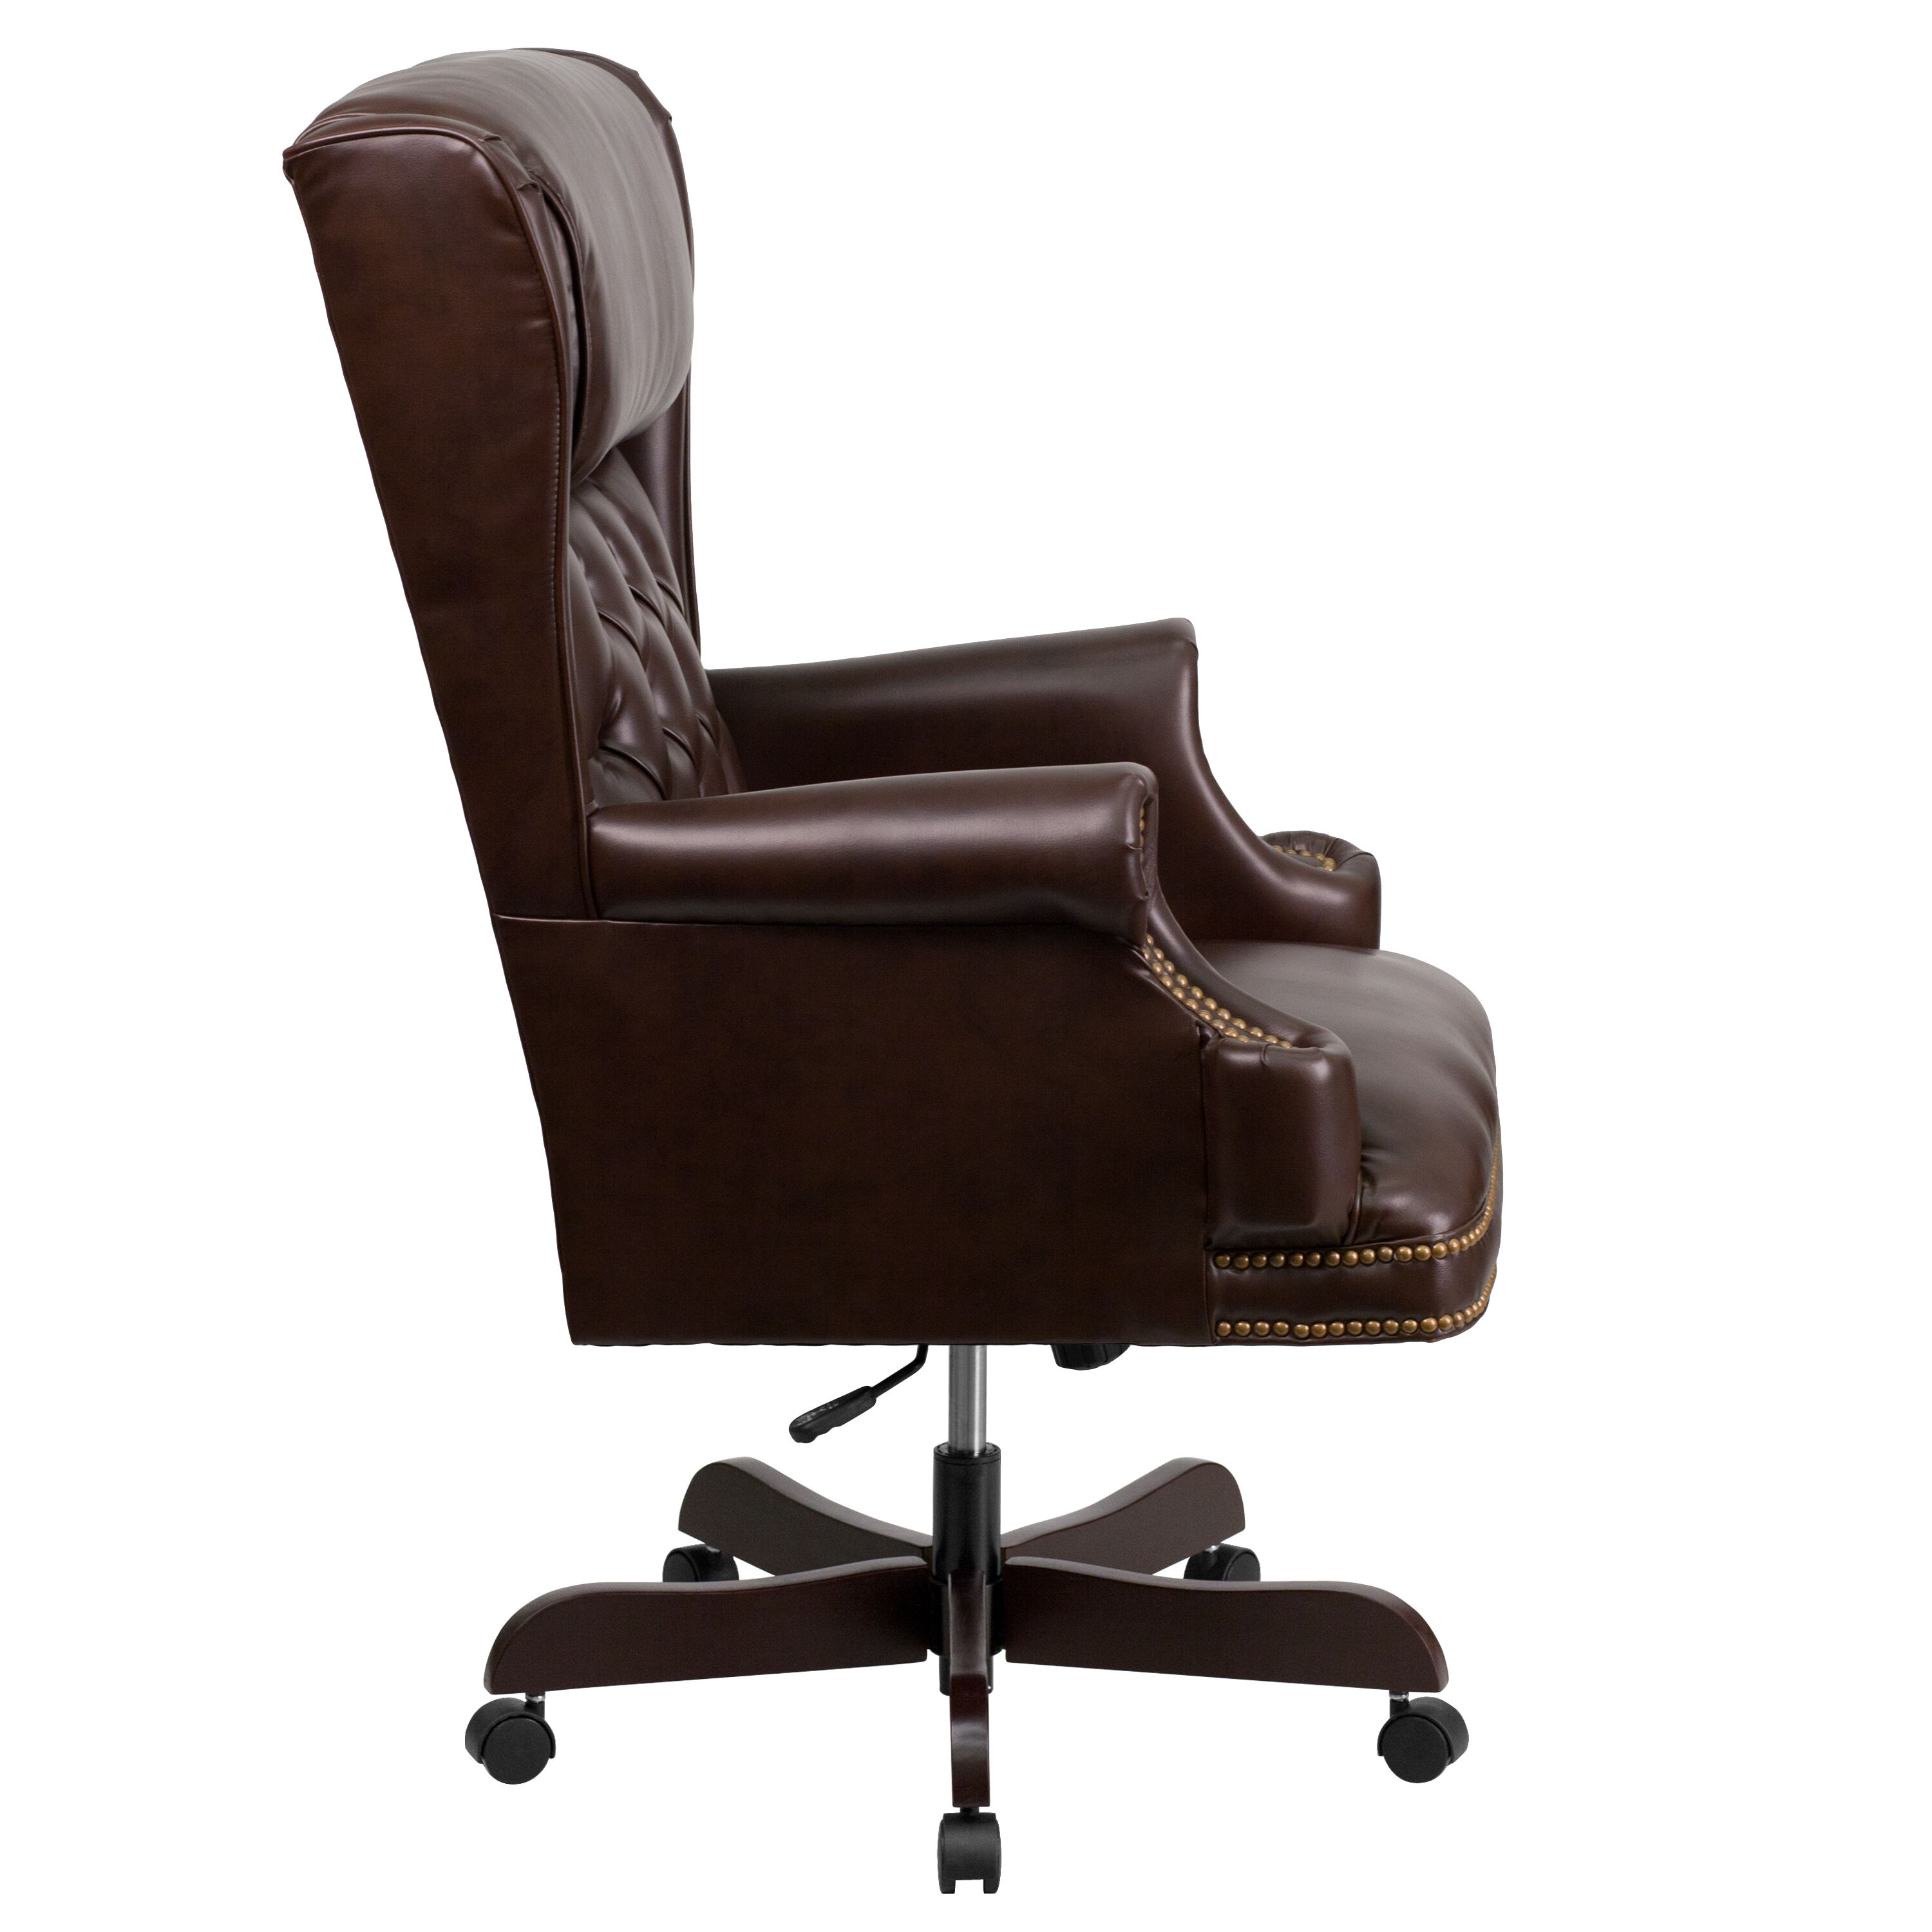 Tufted Leather Office Chair High Back Traditional Tufted Brown Leather Executive Ergonomic Office Chair With Oversized Headrest Nail Trim Arms